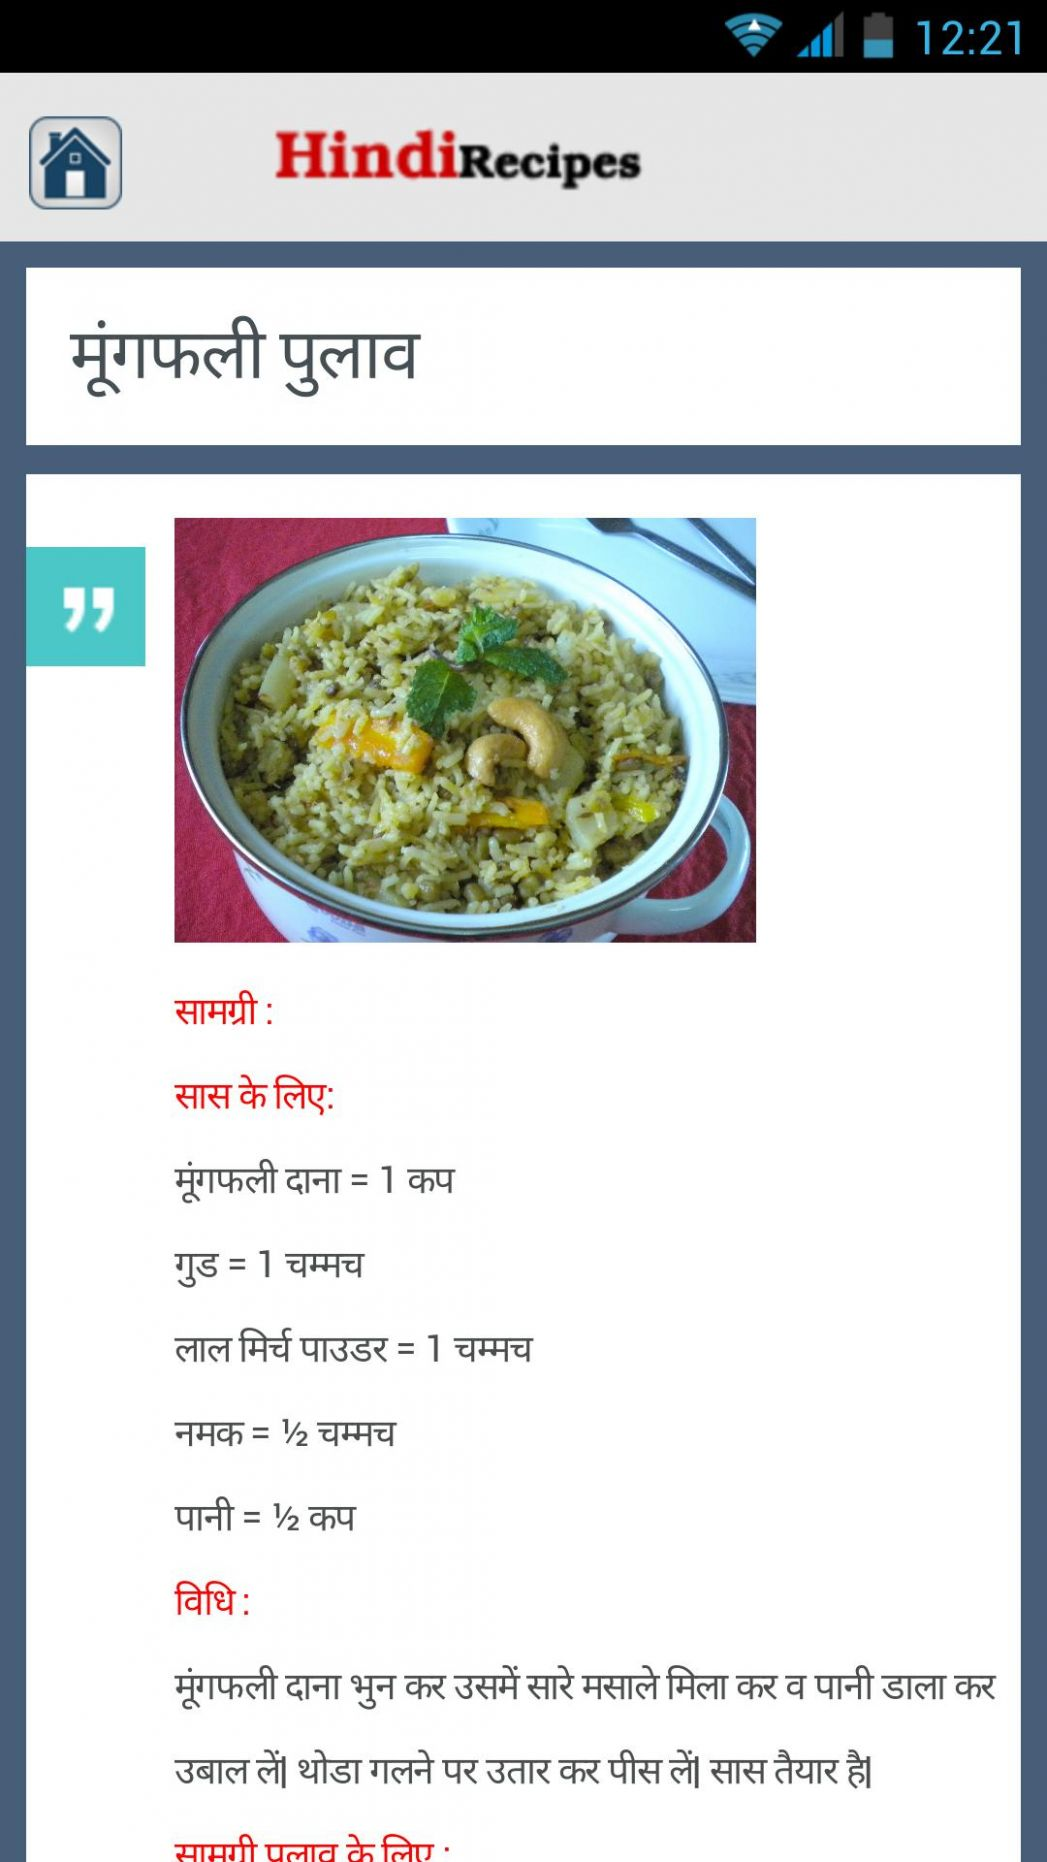 Veg Recipes in Hindi for Android - APK Download - Food Recipes Vegetarian In Hindi